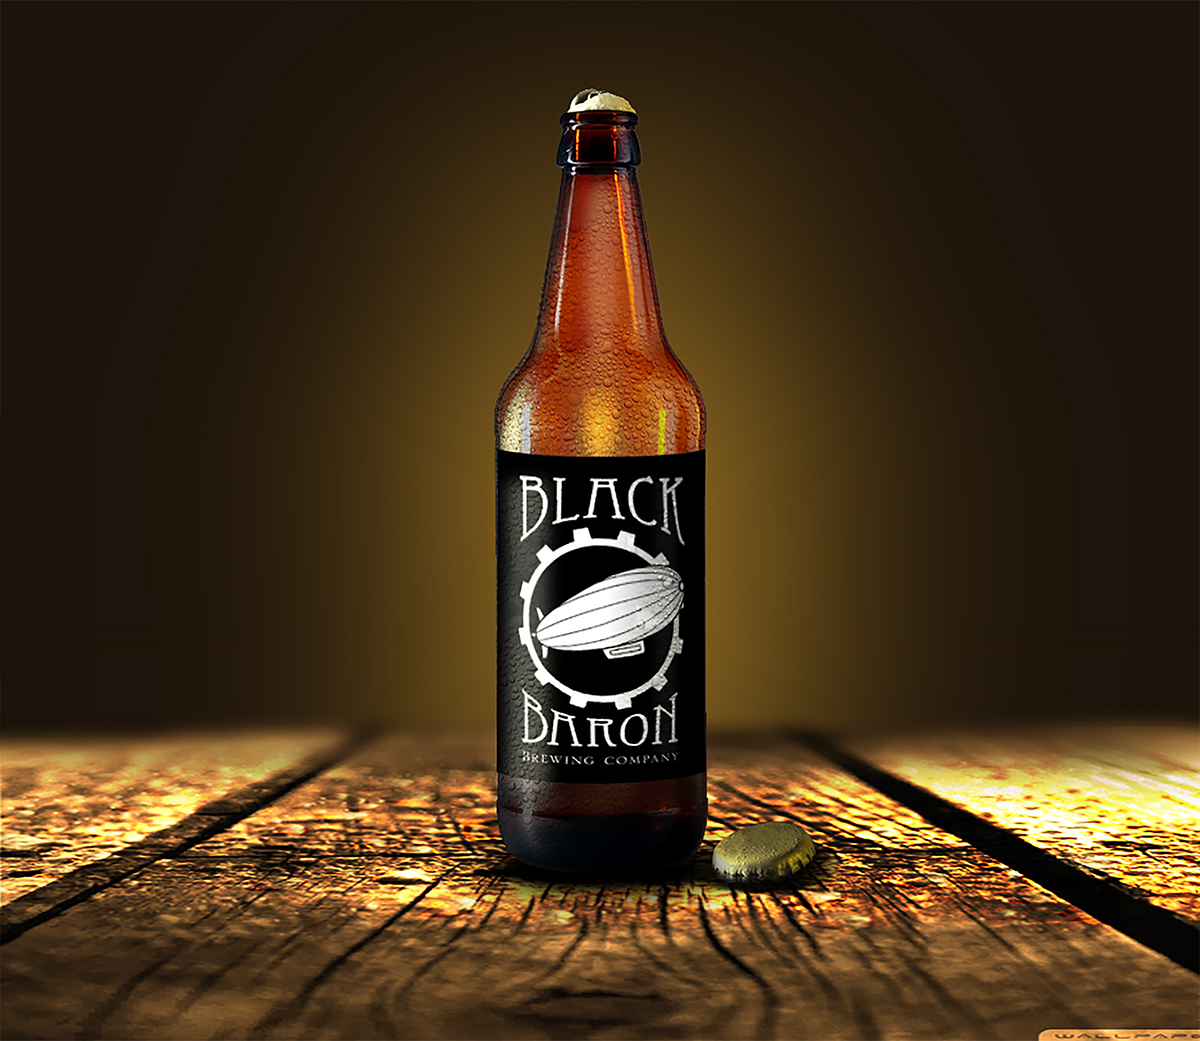 Black Baron Brewing Company On Behance